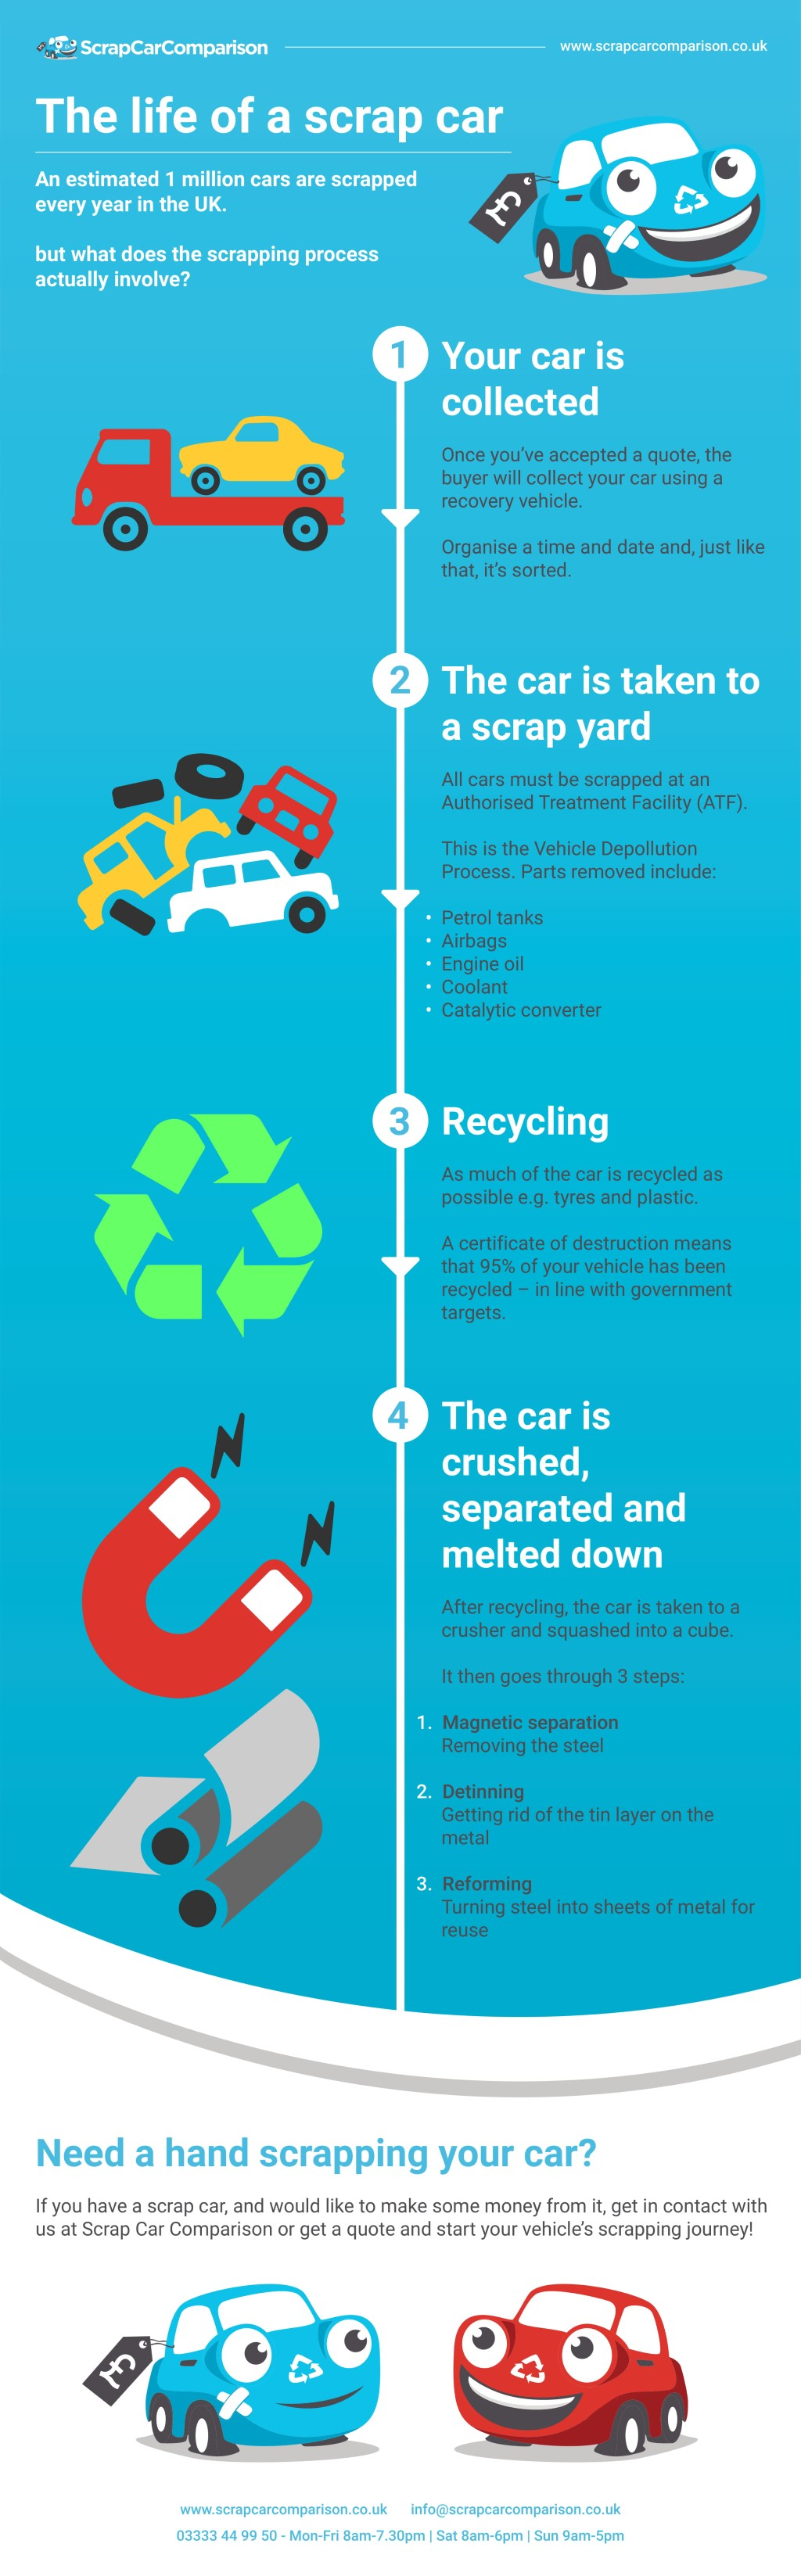 The life of a scrap car infographic